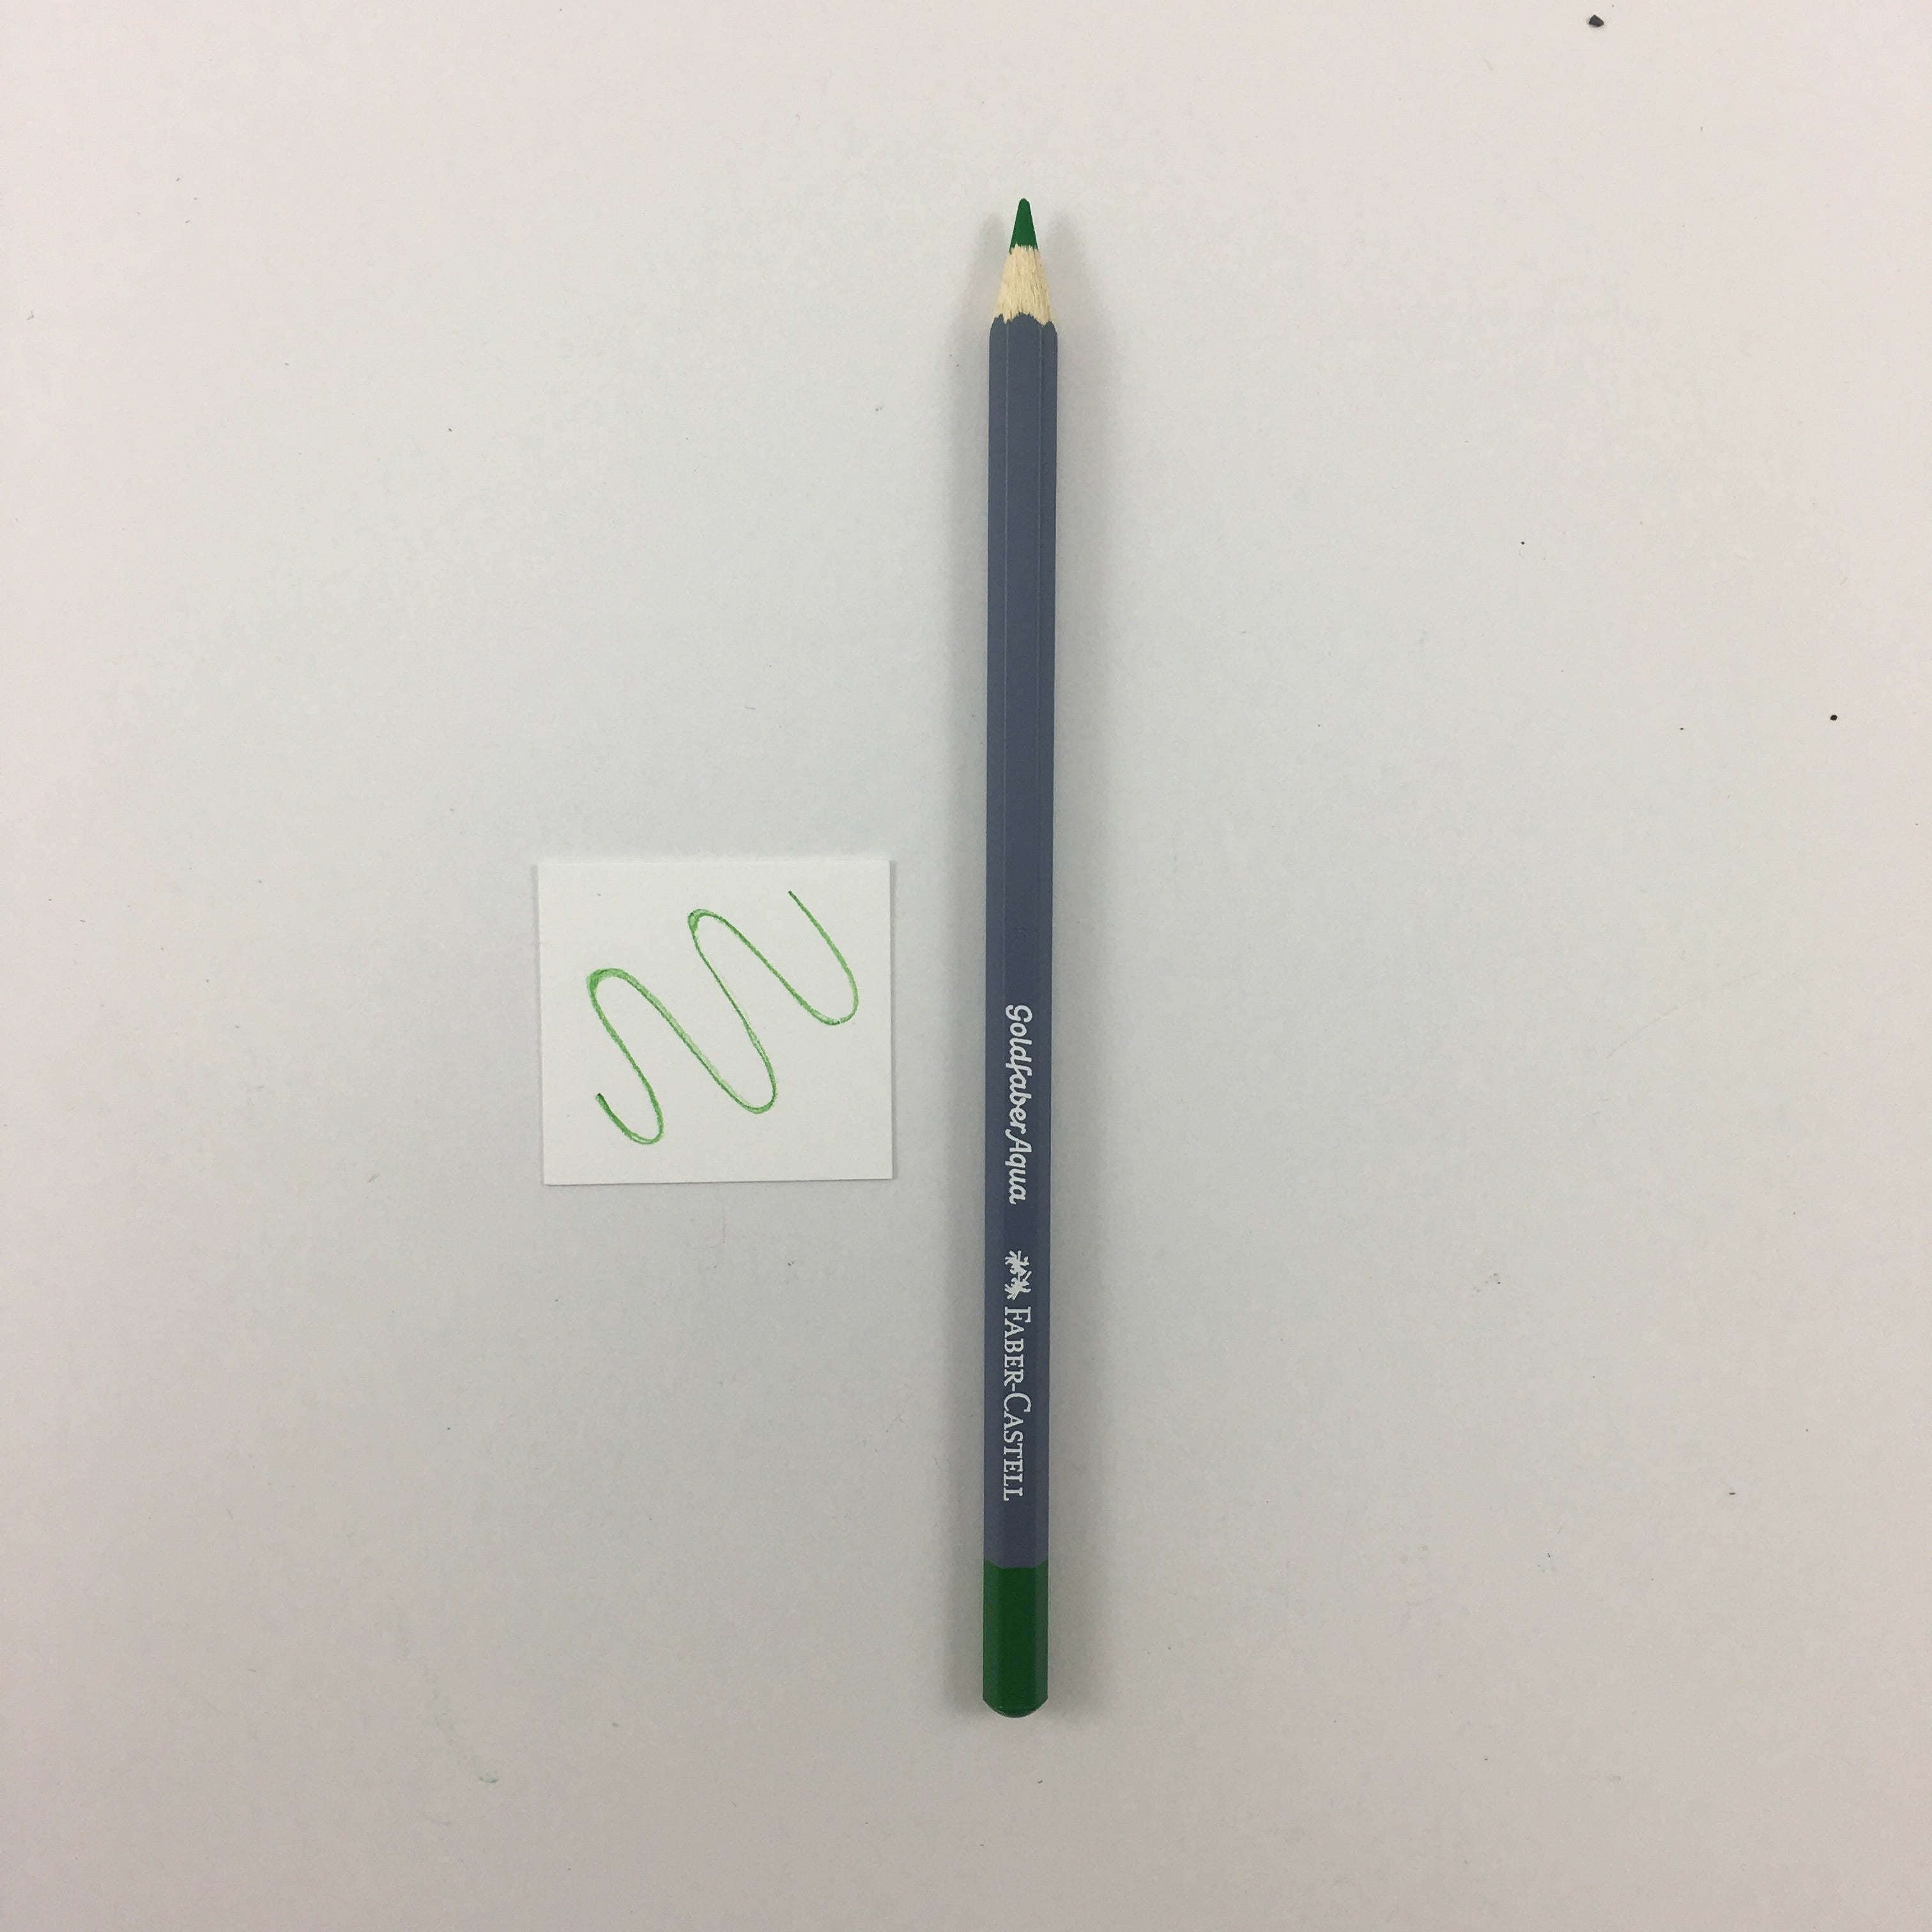 Faber-Castell Goldfaber Aqua Watercolor Pencils - Individuals - 266 - Permanent Green by Faber-Castell - K. A. Artist Shop